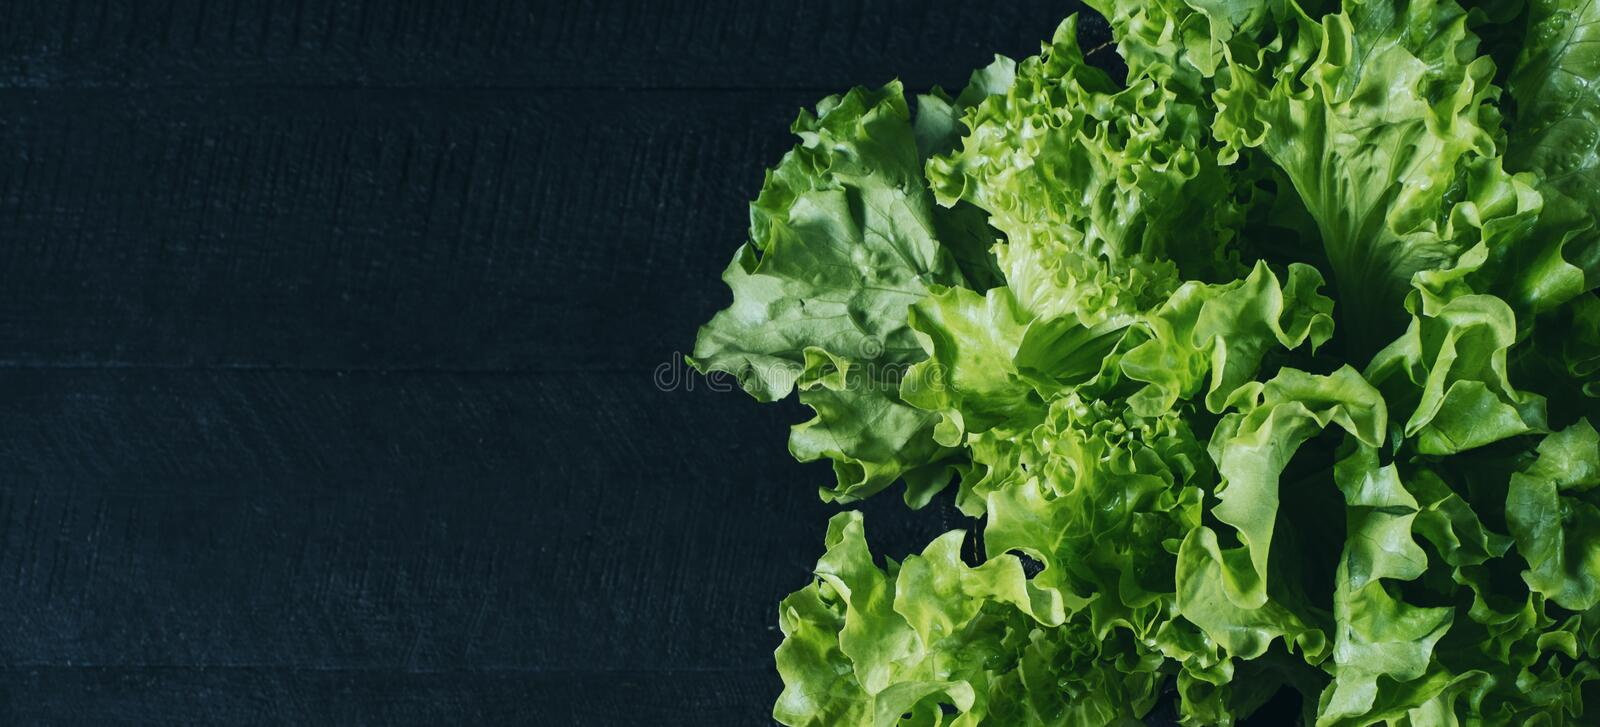 Fresh green salad lettuce leaves isolated on a dark background of the aged wooden boards vintage horizontal top view royalty free stock photography